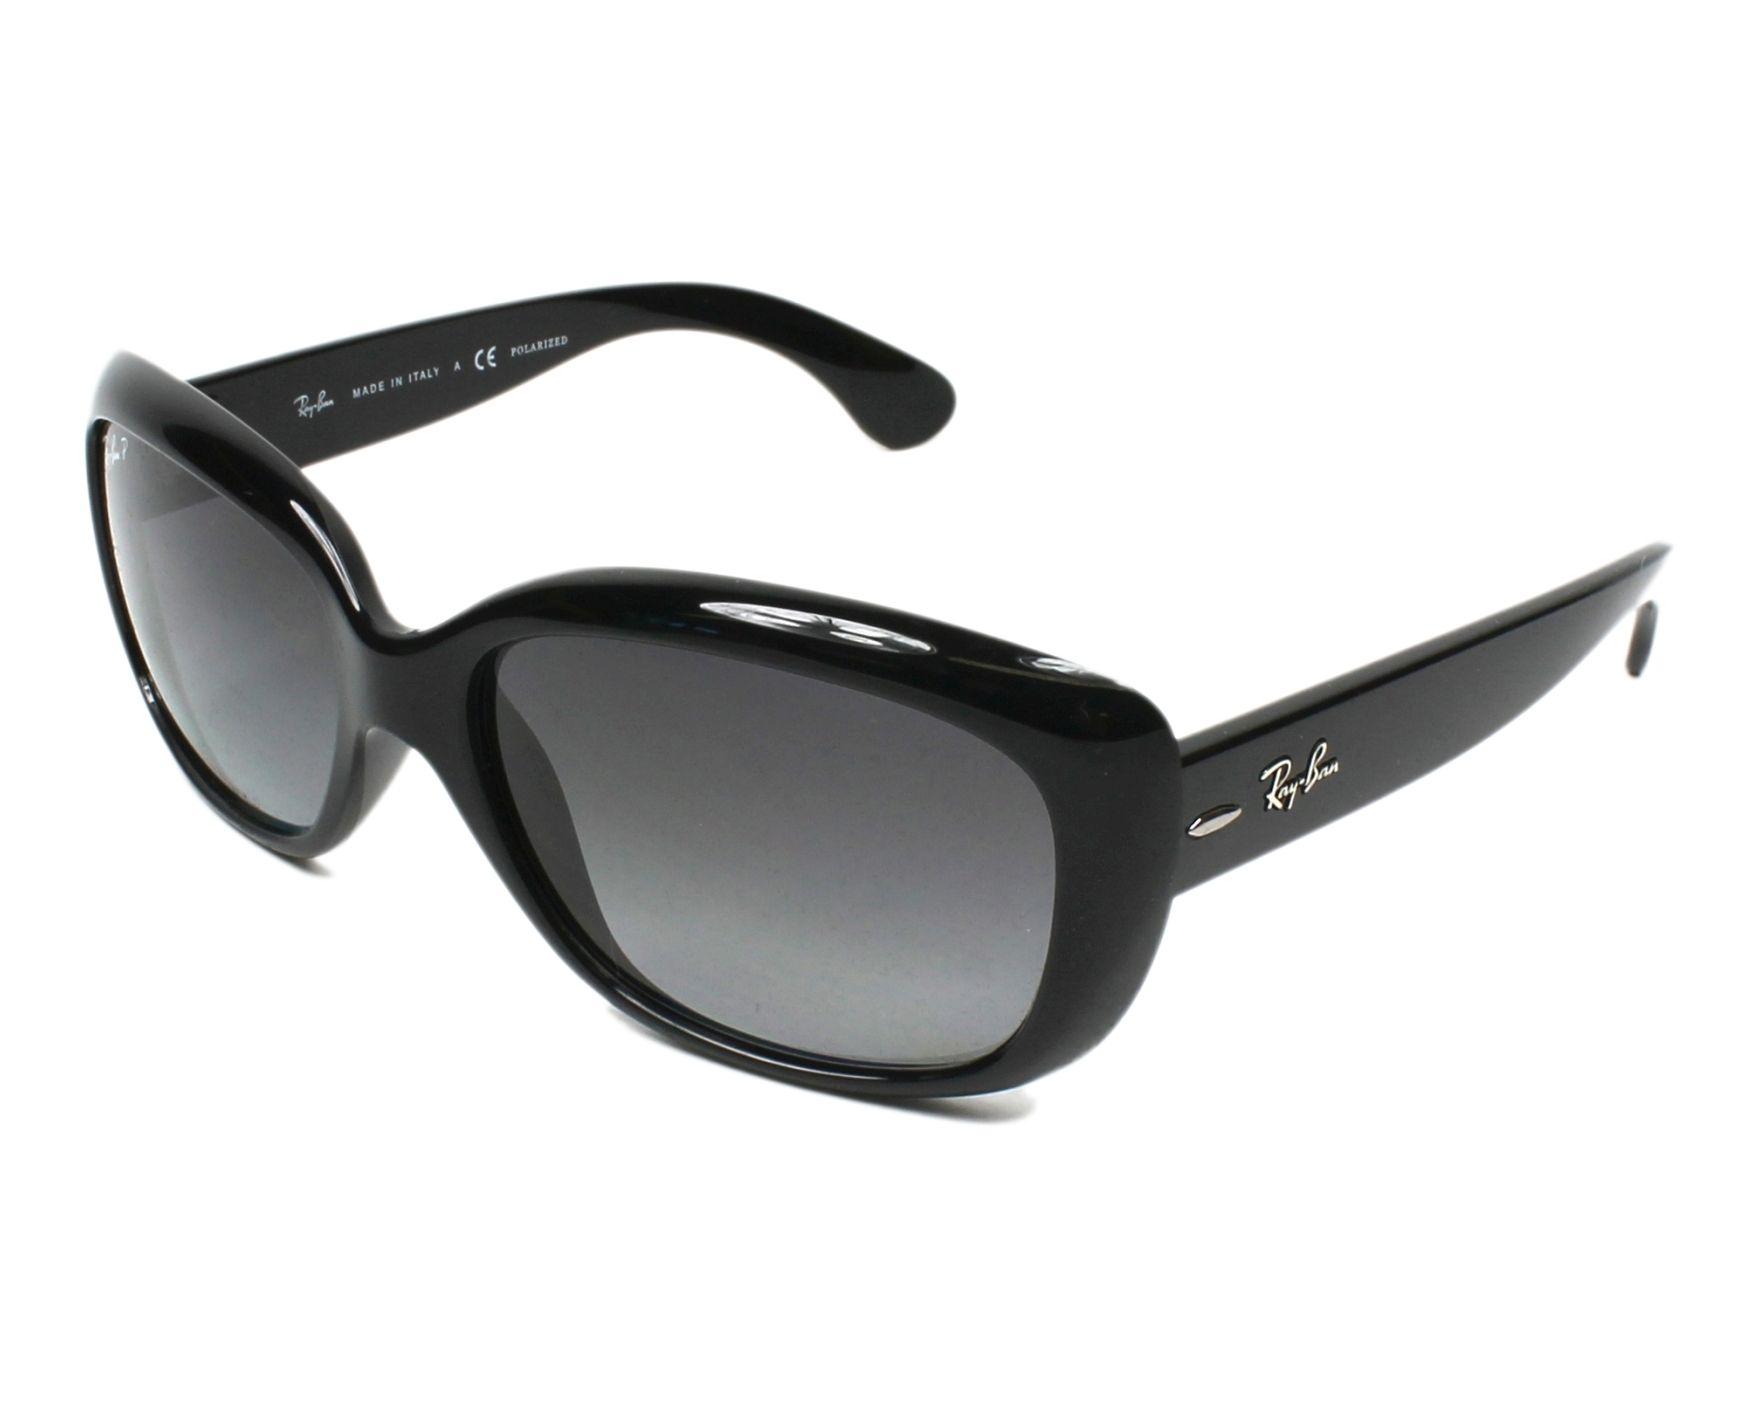 1c5008ced1 Sunglasses Ray-Ban RB-4101 601 T3 58-19 Black profile view